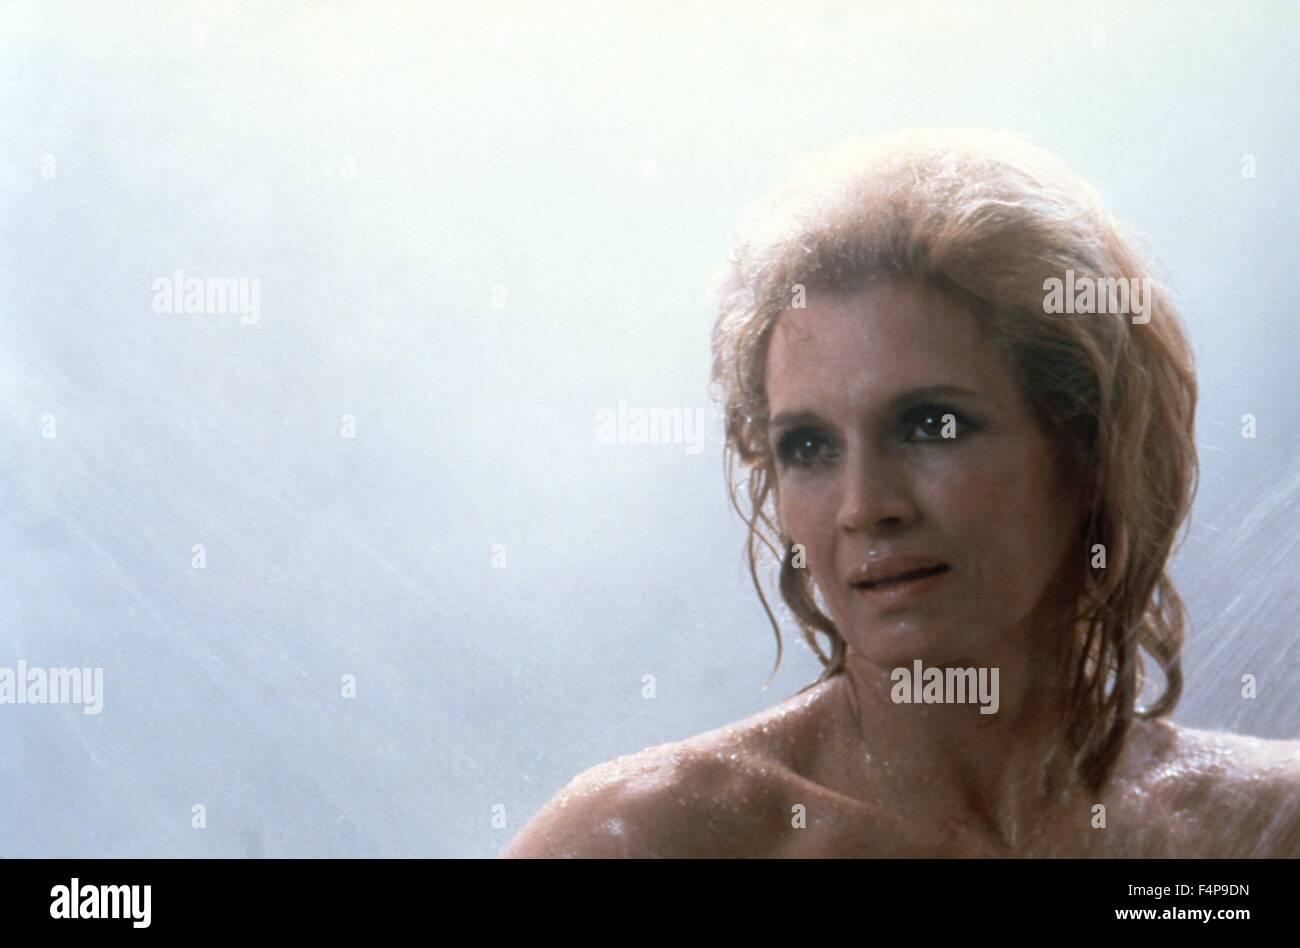 Angie Dickinson / Dressed to Kill 1980 directed by Brian De Palma - Stock Image